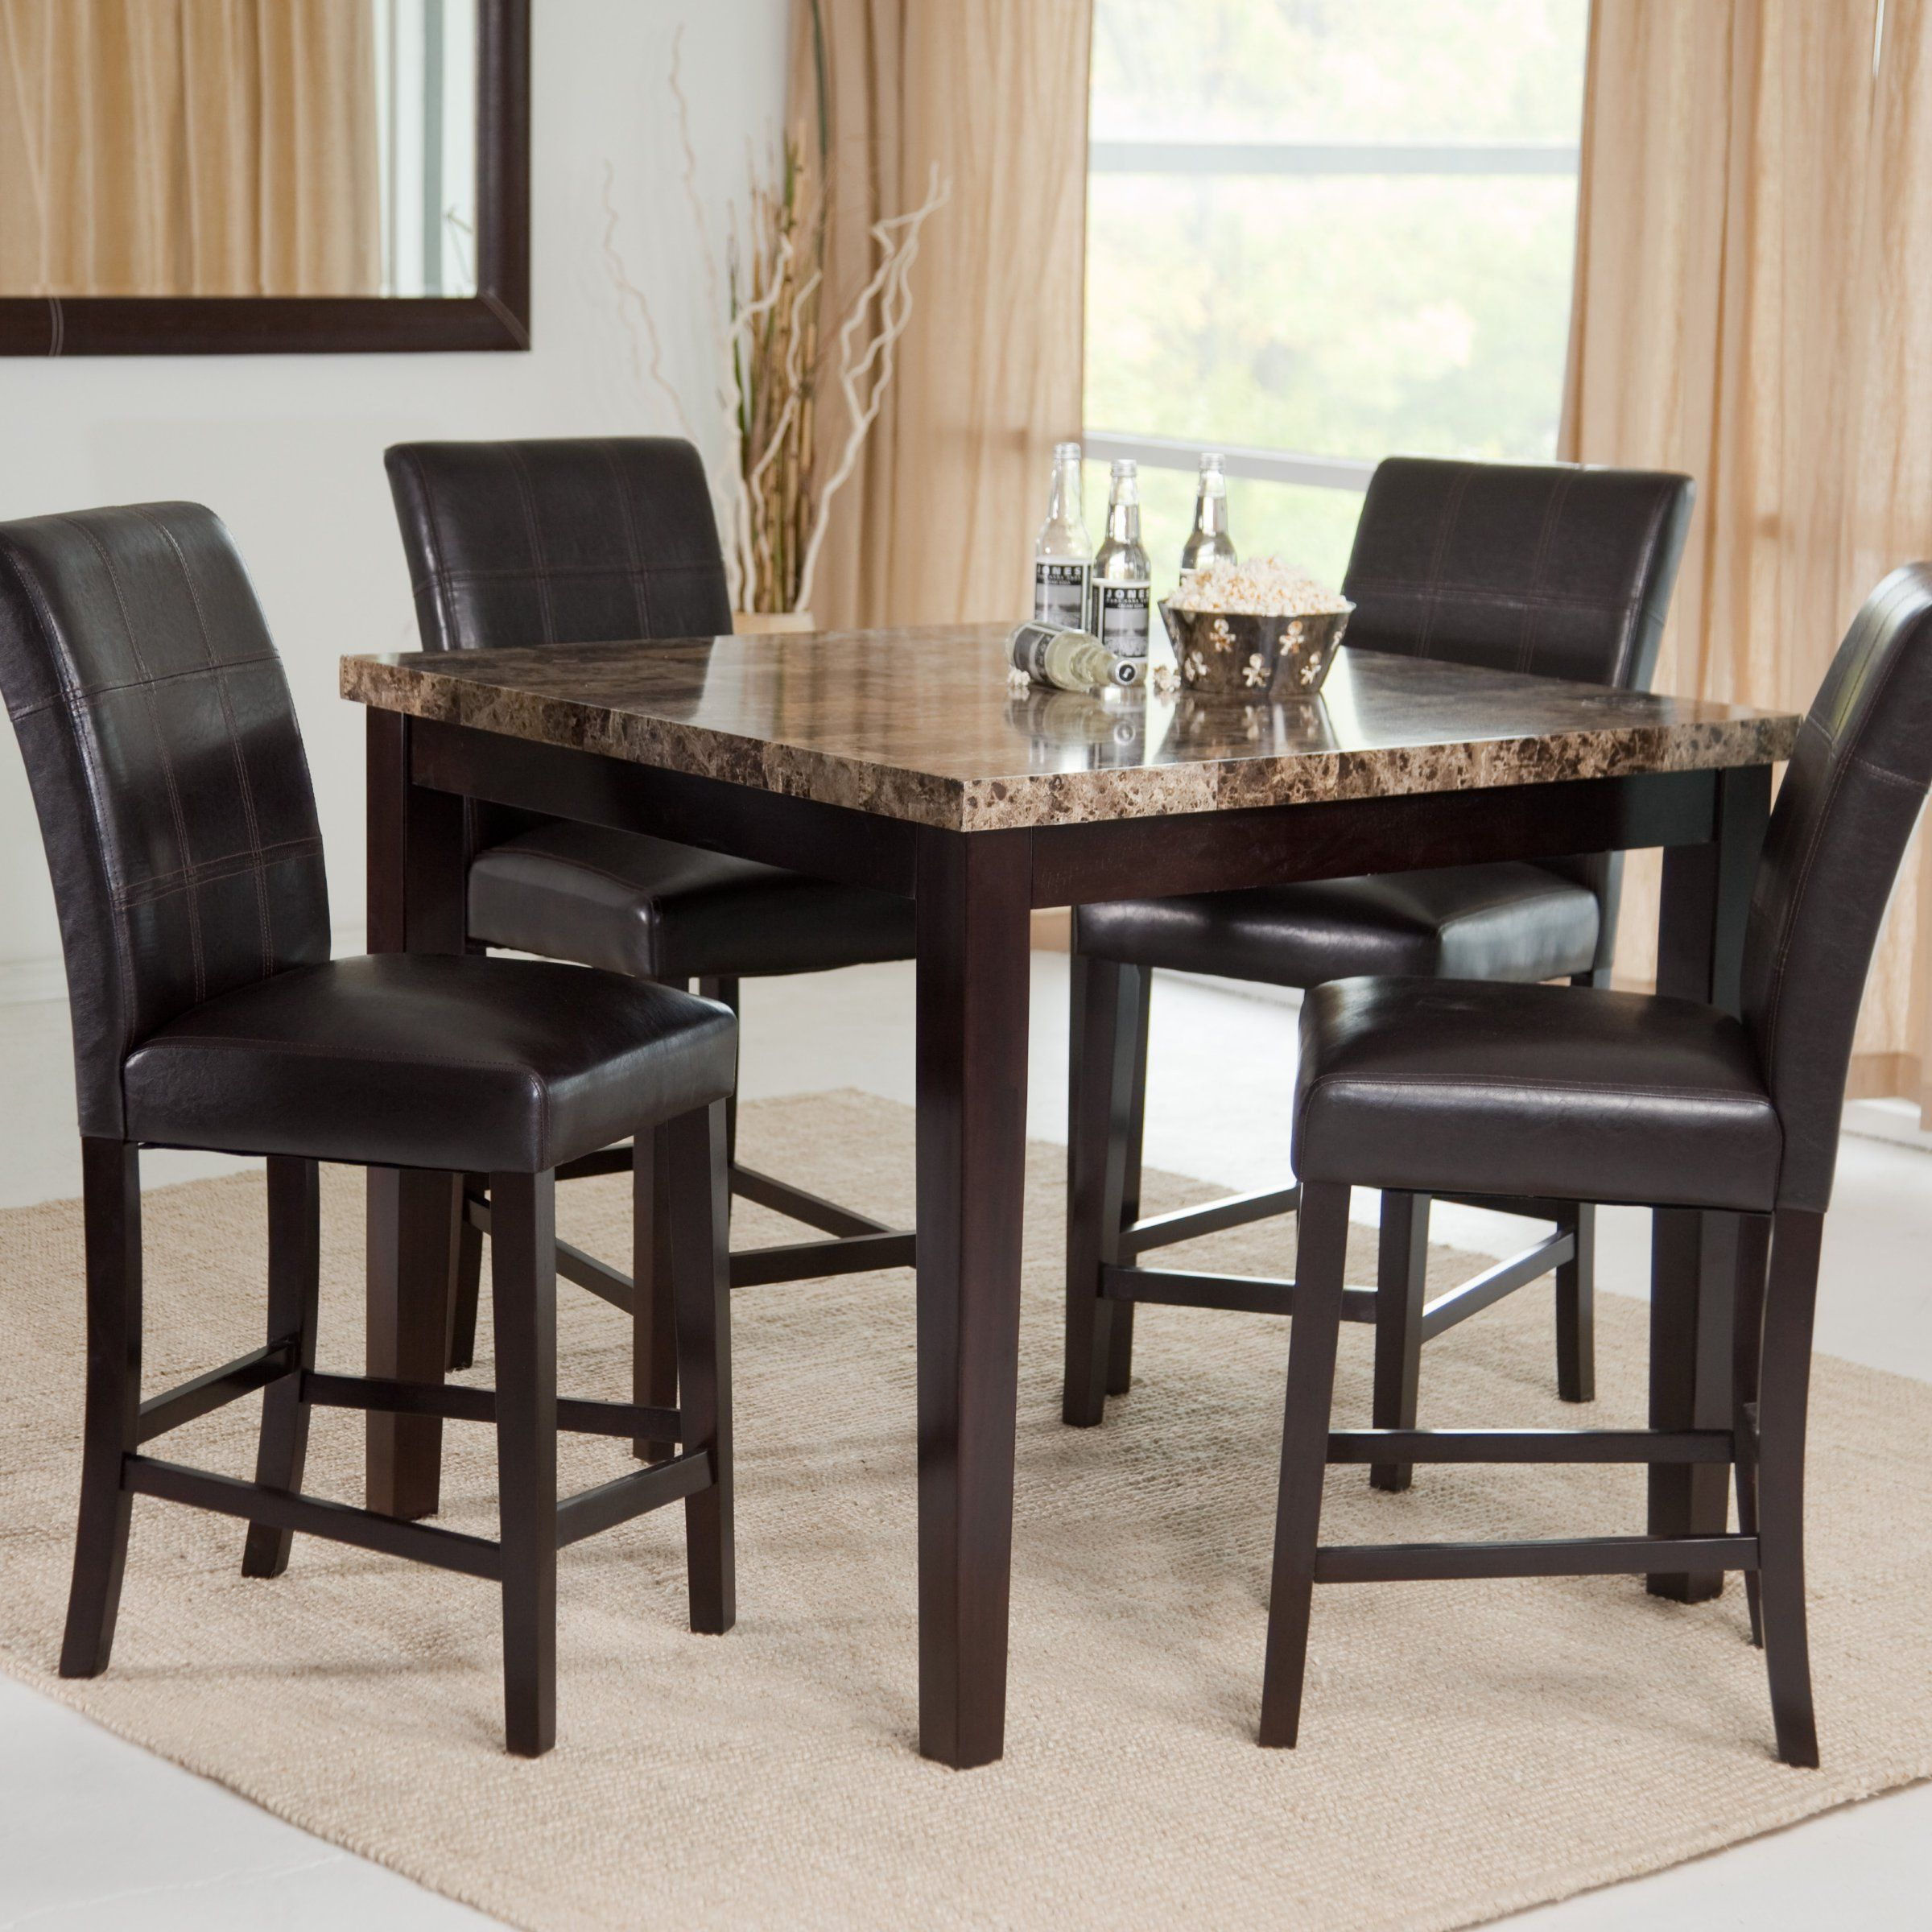 Kitchen bistro set  Palazzo Piece Counter Height Dining Set  Dining Table Sets at